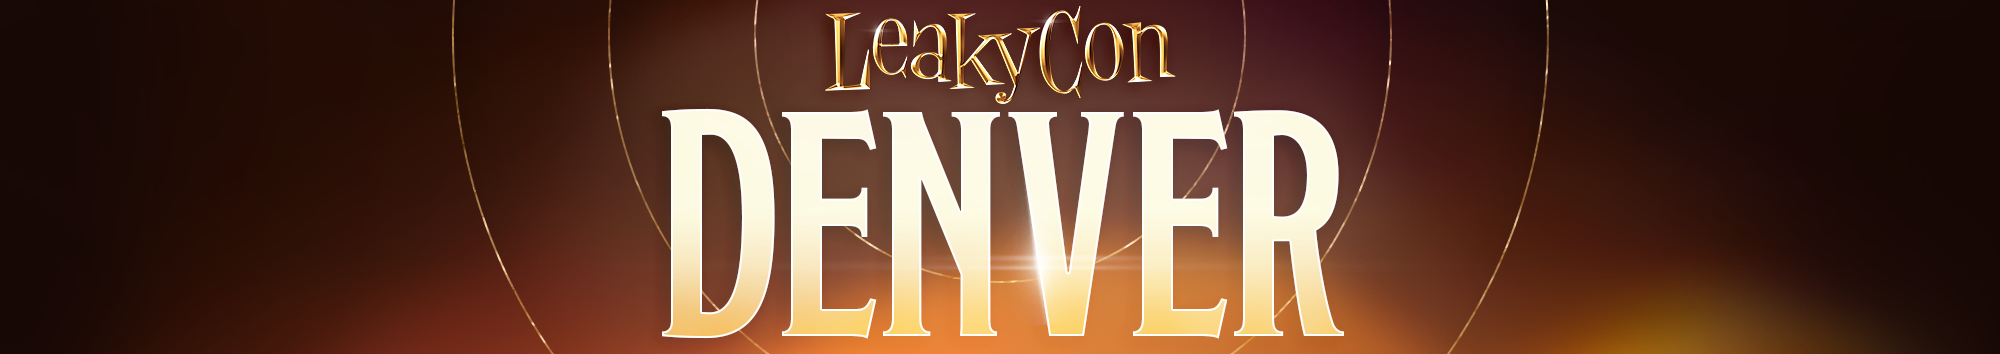 Tickets for LeakyCon 2021: Denver in Denver from ShowClix